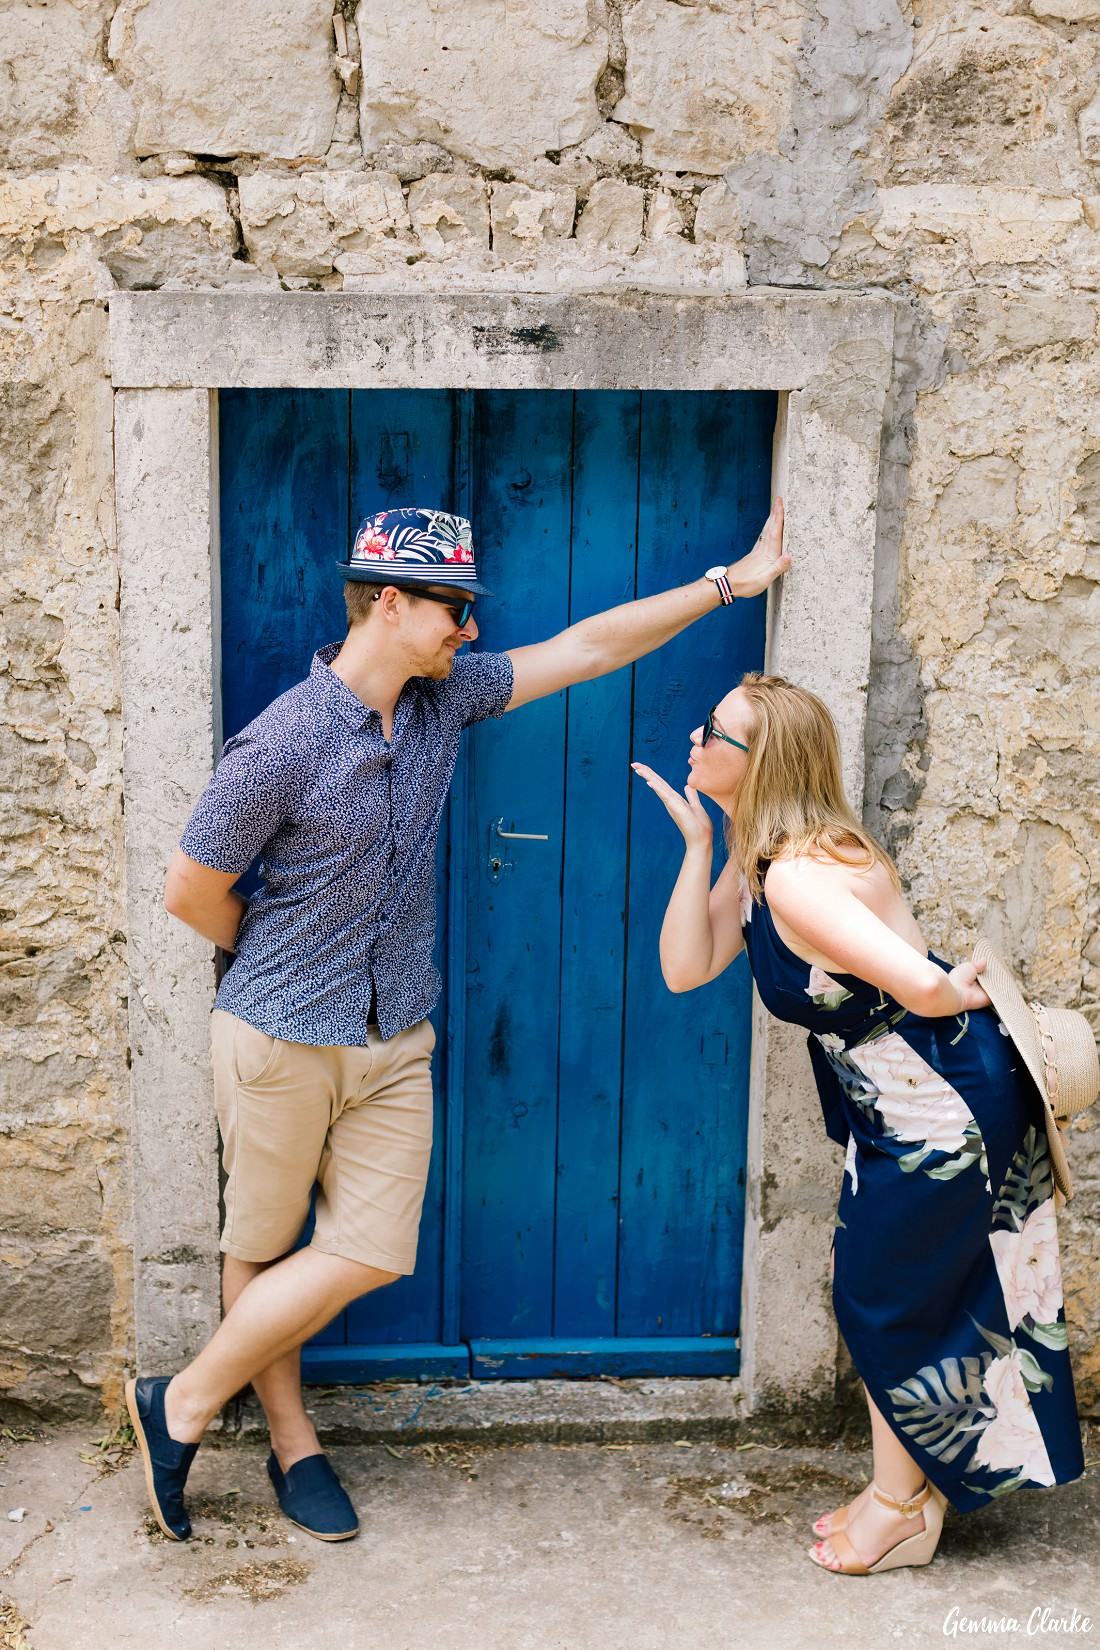 This couple love to pose and they do so in front of a bright blue door as she blows a kiss to him in these Portraits on a Croatian Island